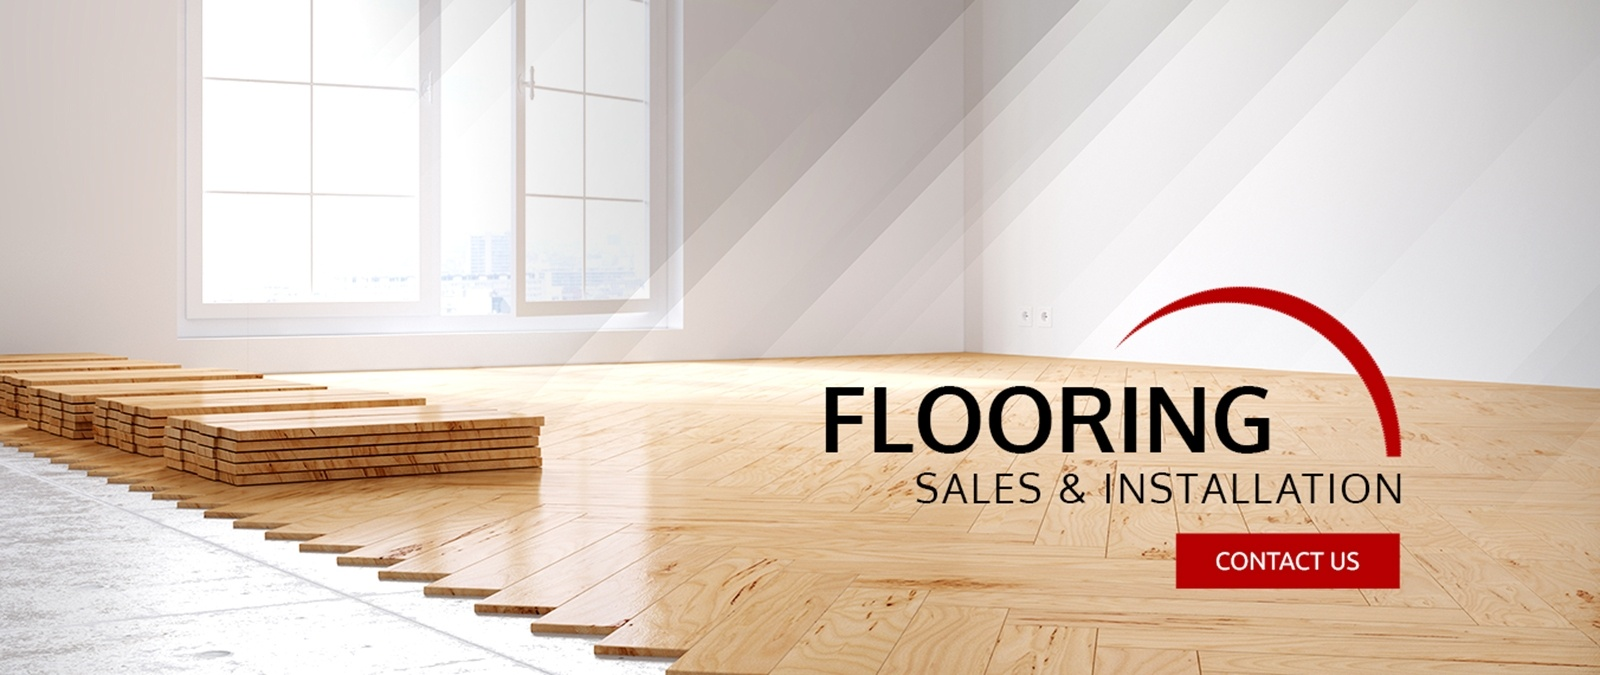 Flooring Contractor Dallas TX